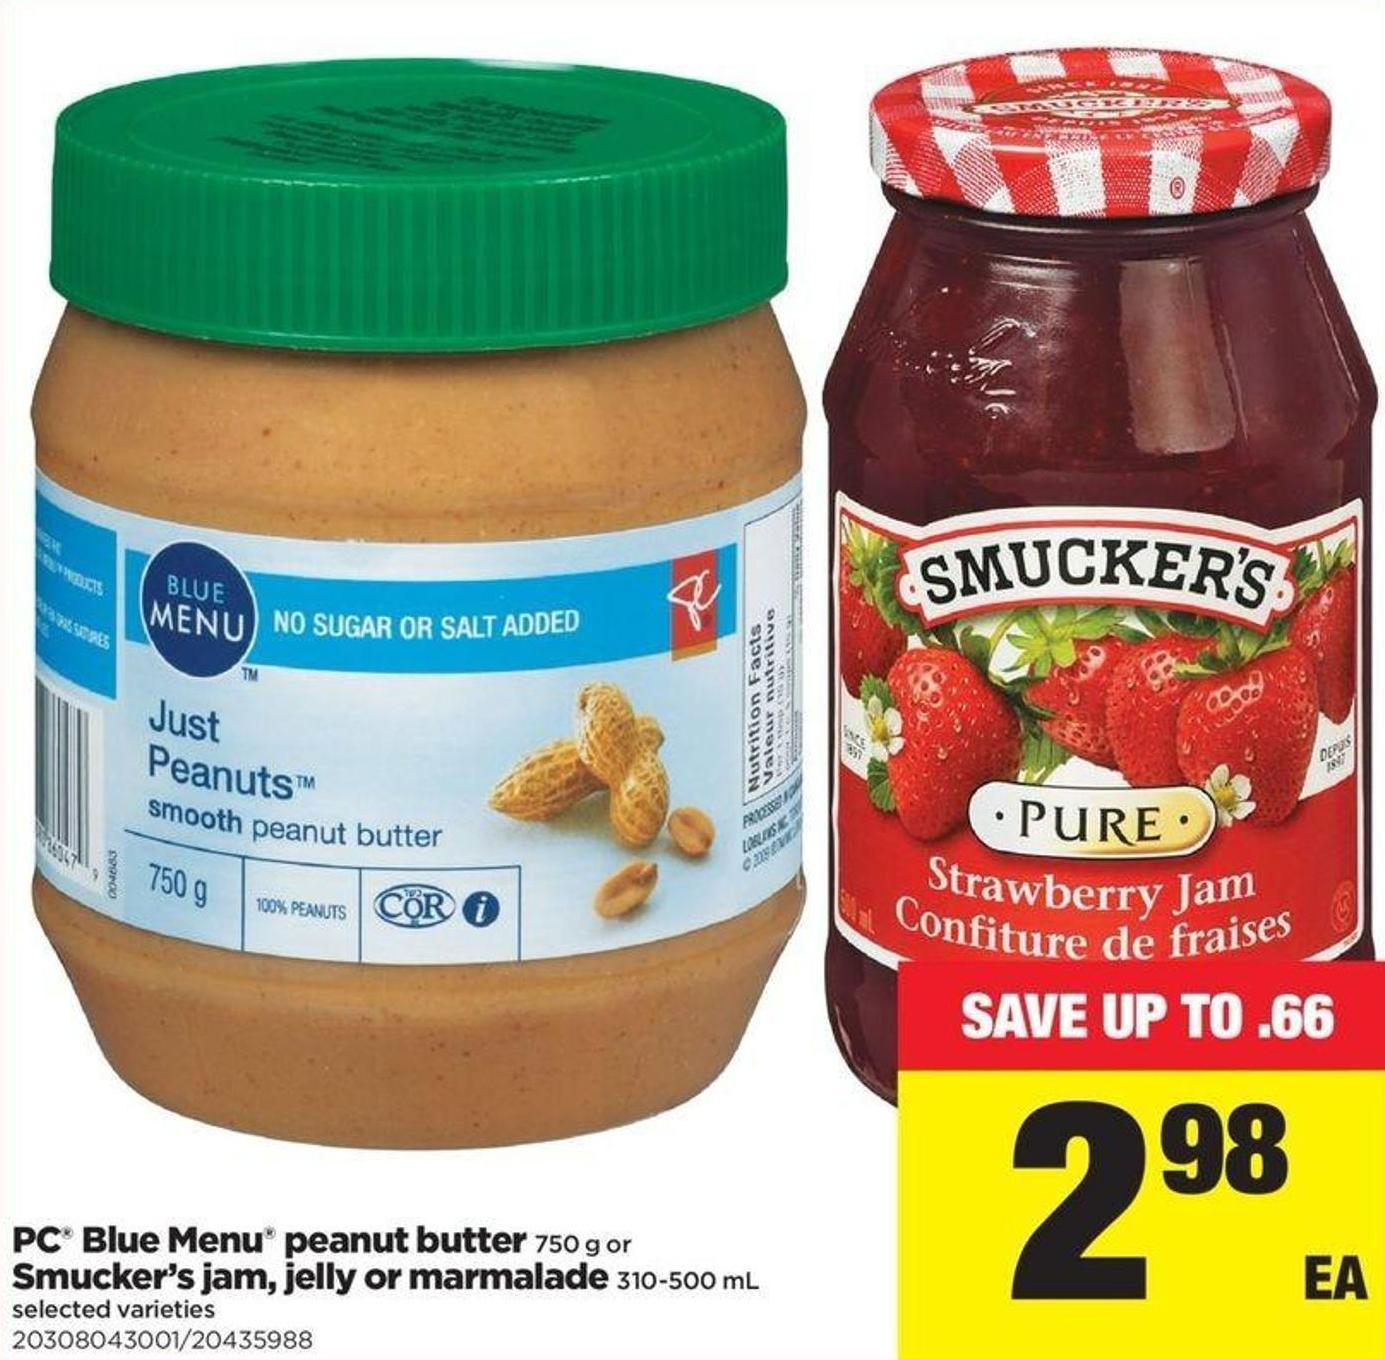 PC Blue Menu Peanut Butter - 750 G Or Smucker's Jam - Jelly Or Marmalade - 310-500 Ml